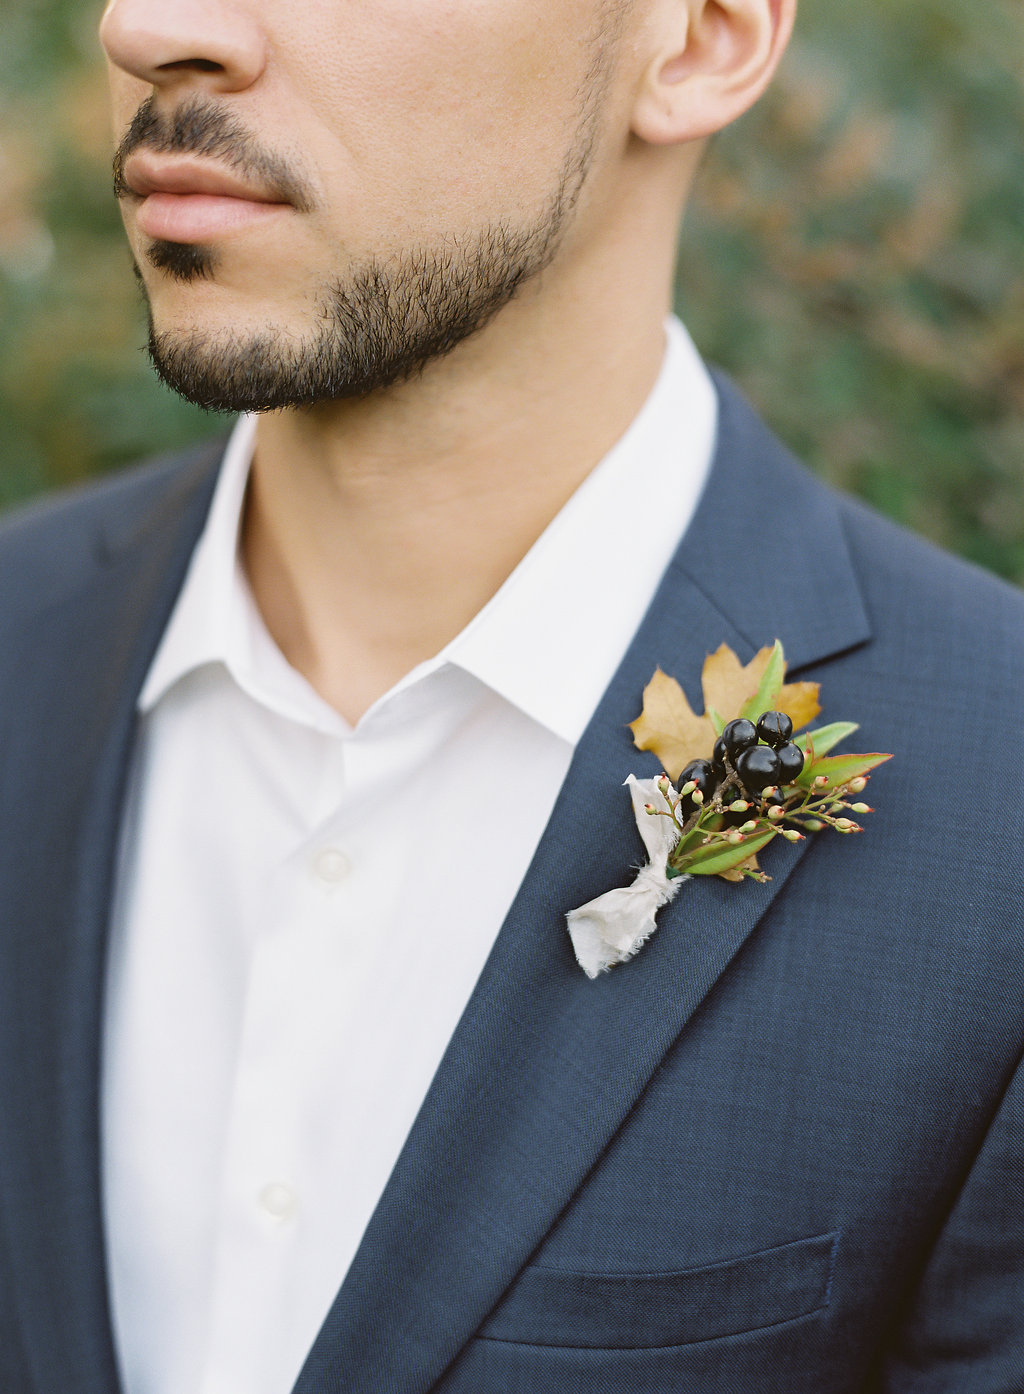 Fine art film photographer photography wedding engagement washington DC georgetown virginia modern destination inspiration tuscan inspired minimal classic timeless california ny groom boutonniere